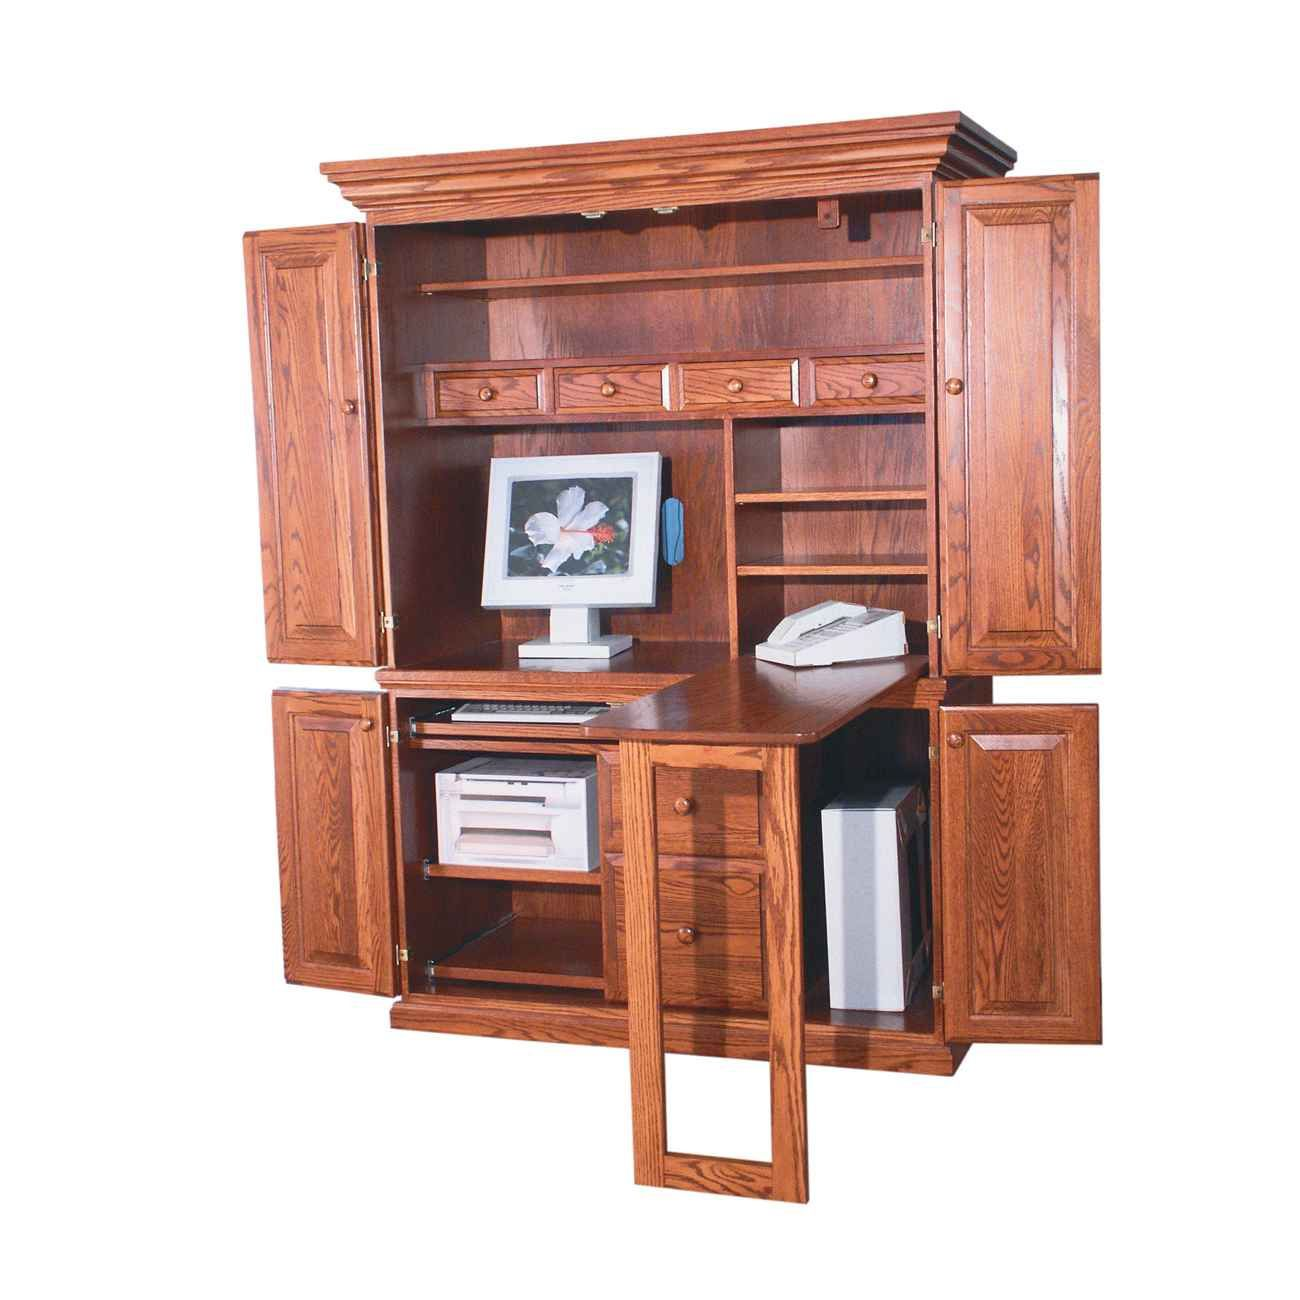 Office armoire furniture rustic home office furniture check more at http michael